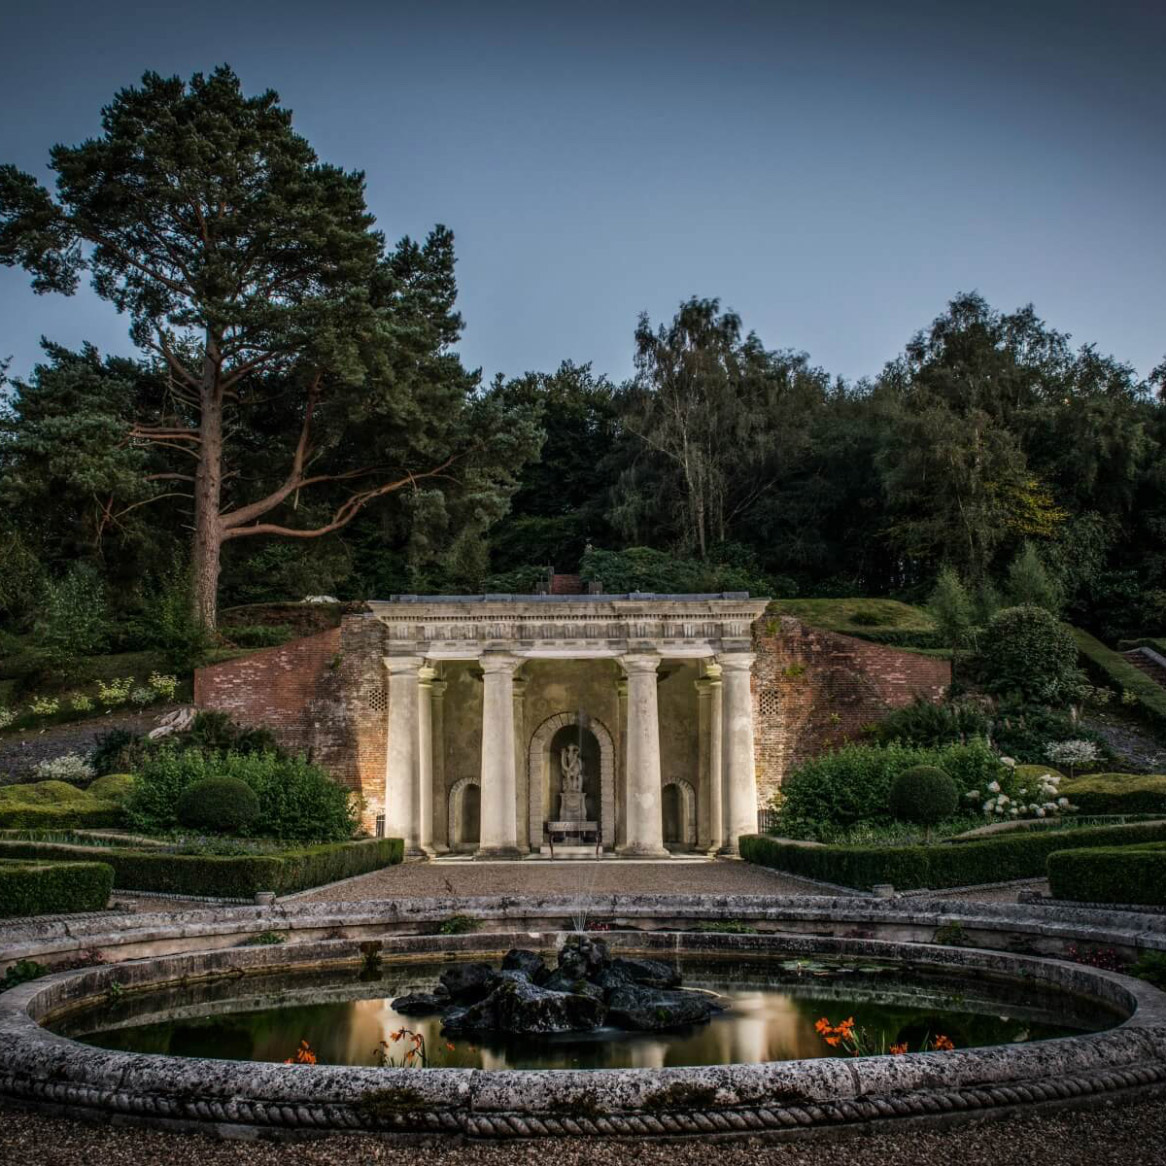 The Estate and Italian Gardens at night